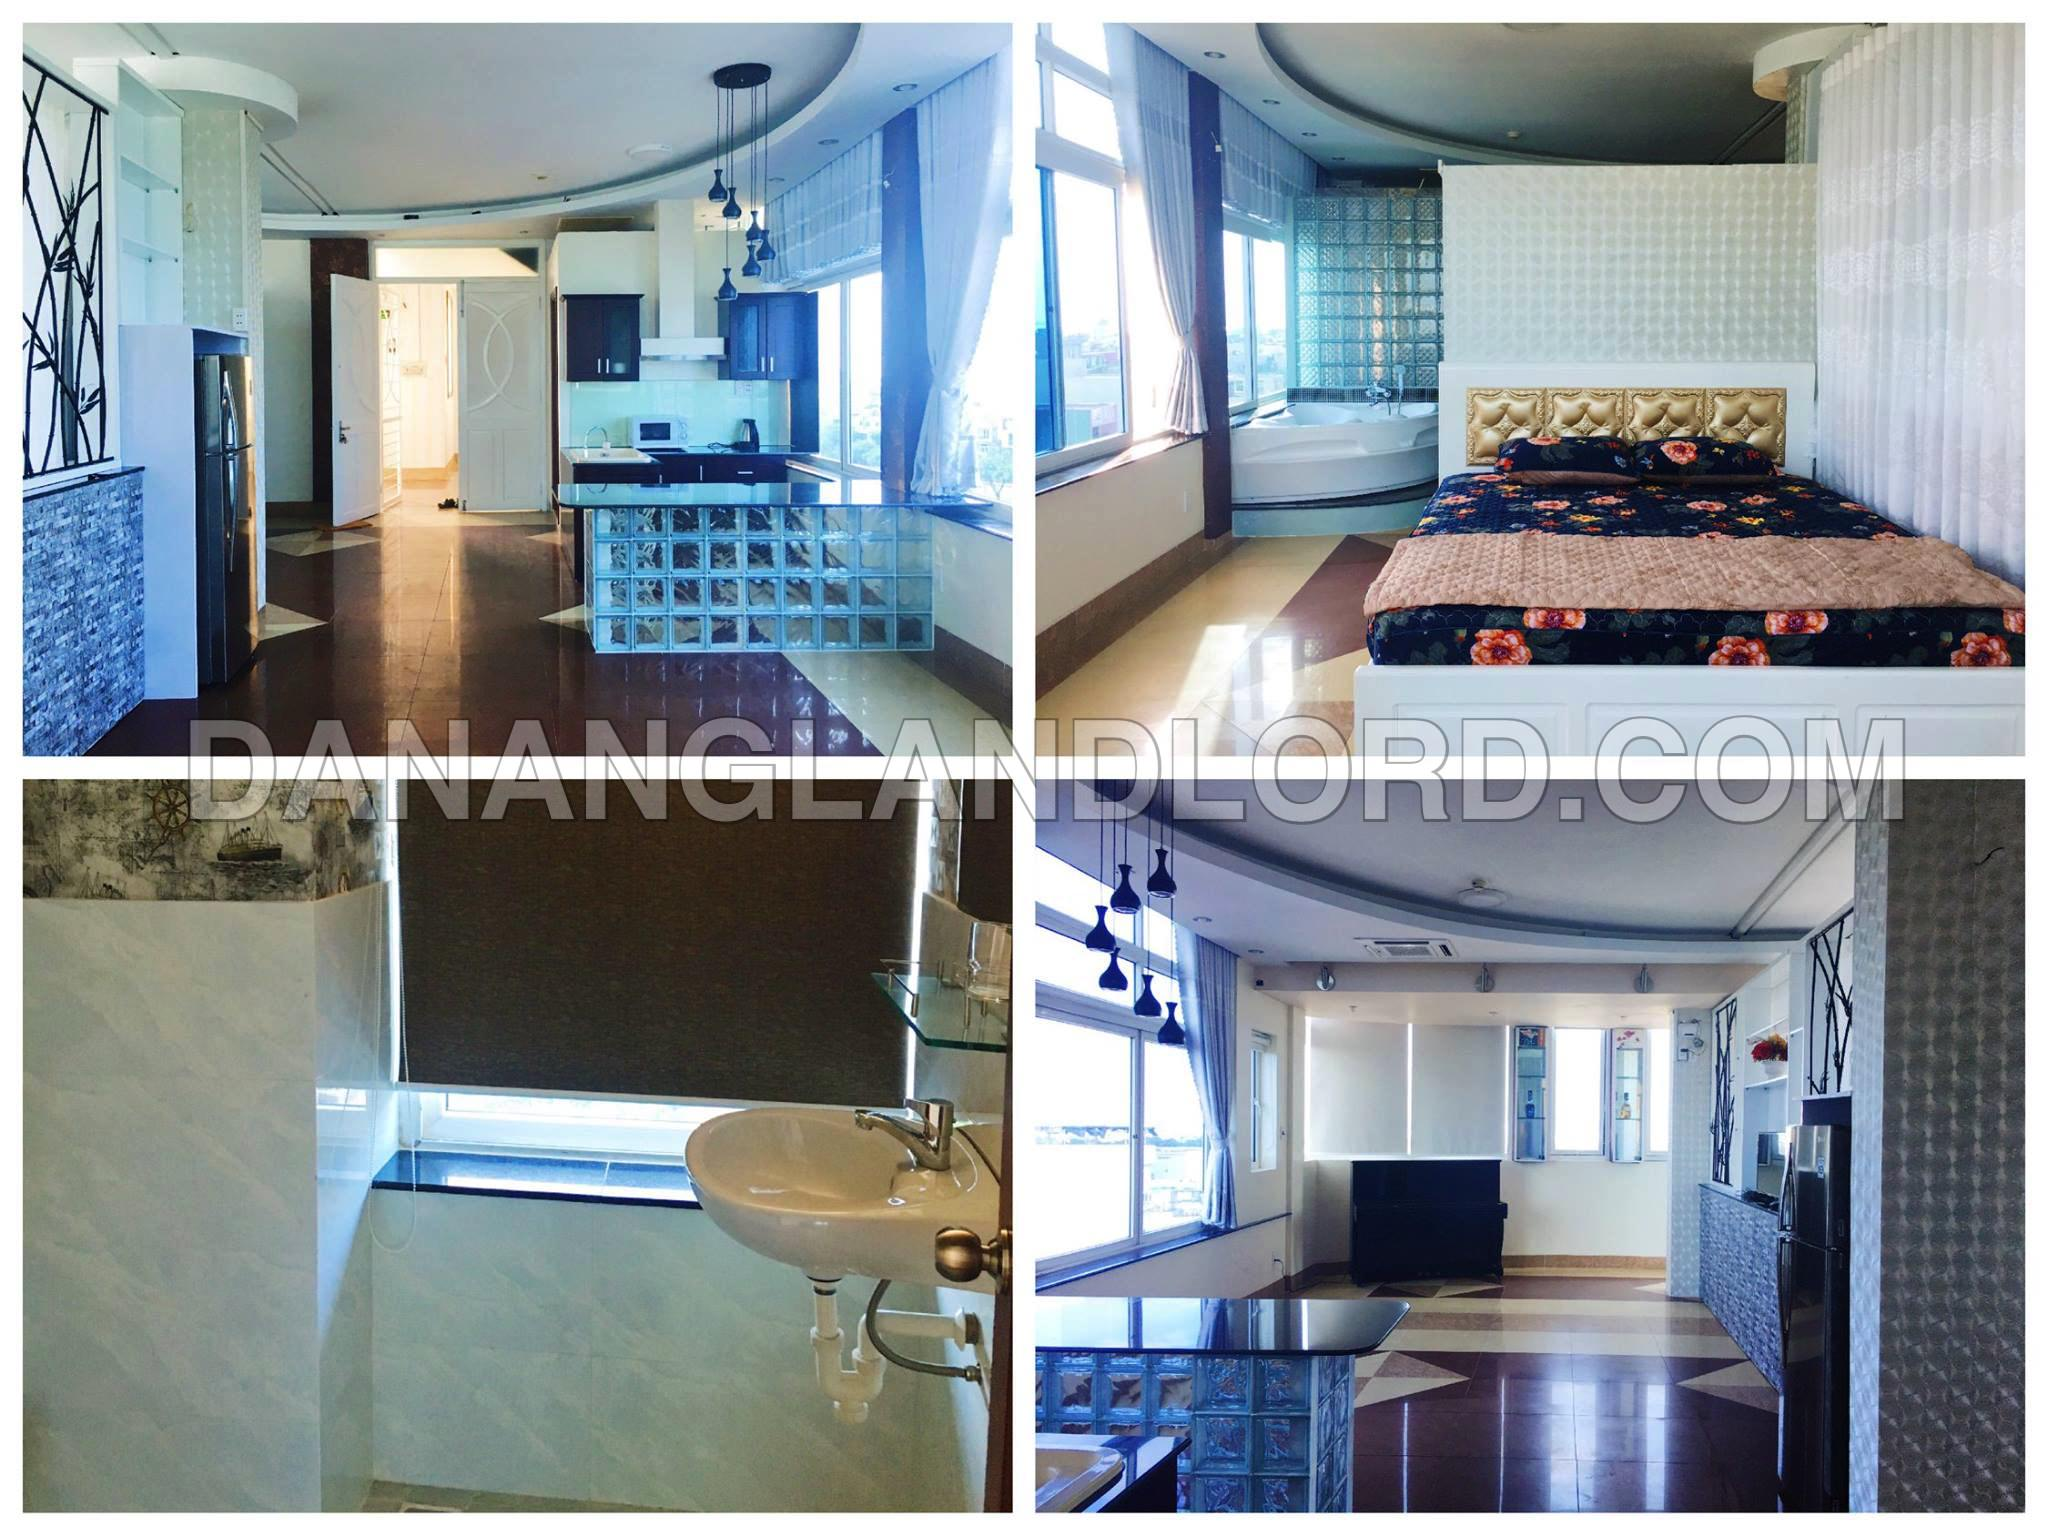 The luxury 2 bedroom apartment in Hai Chau district